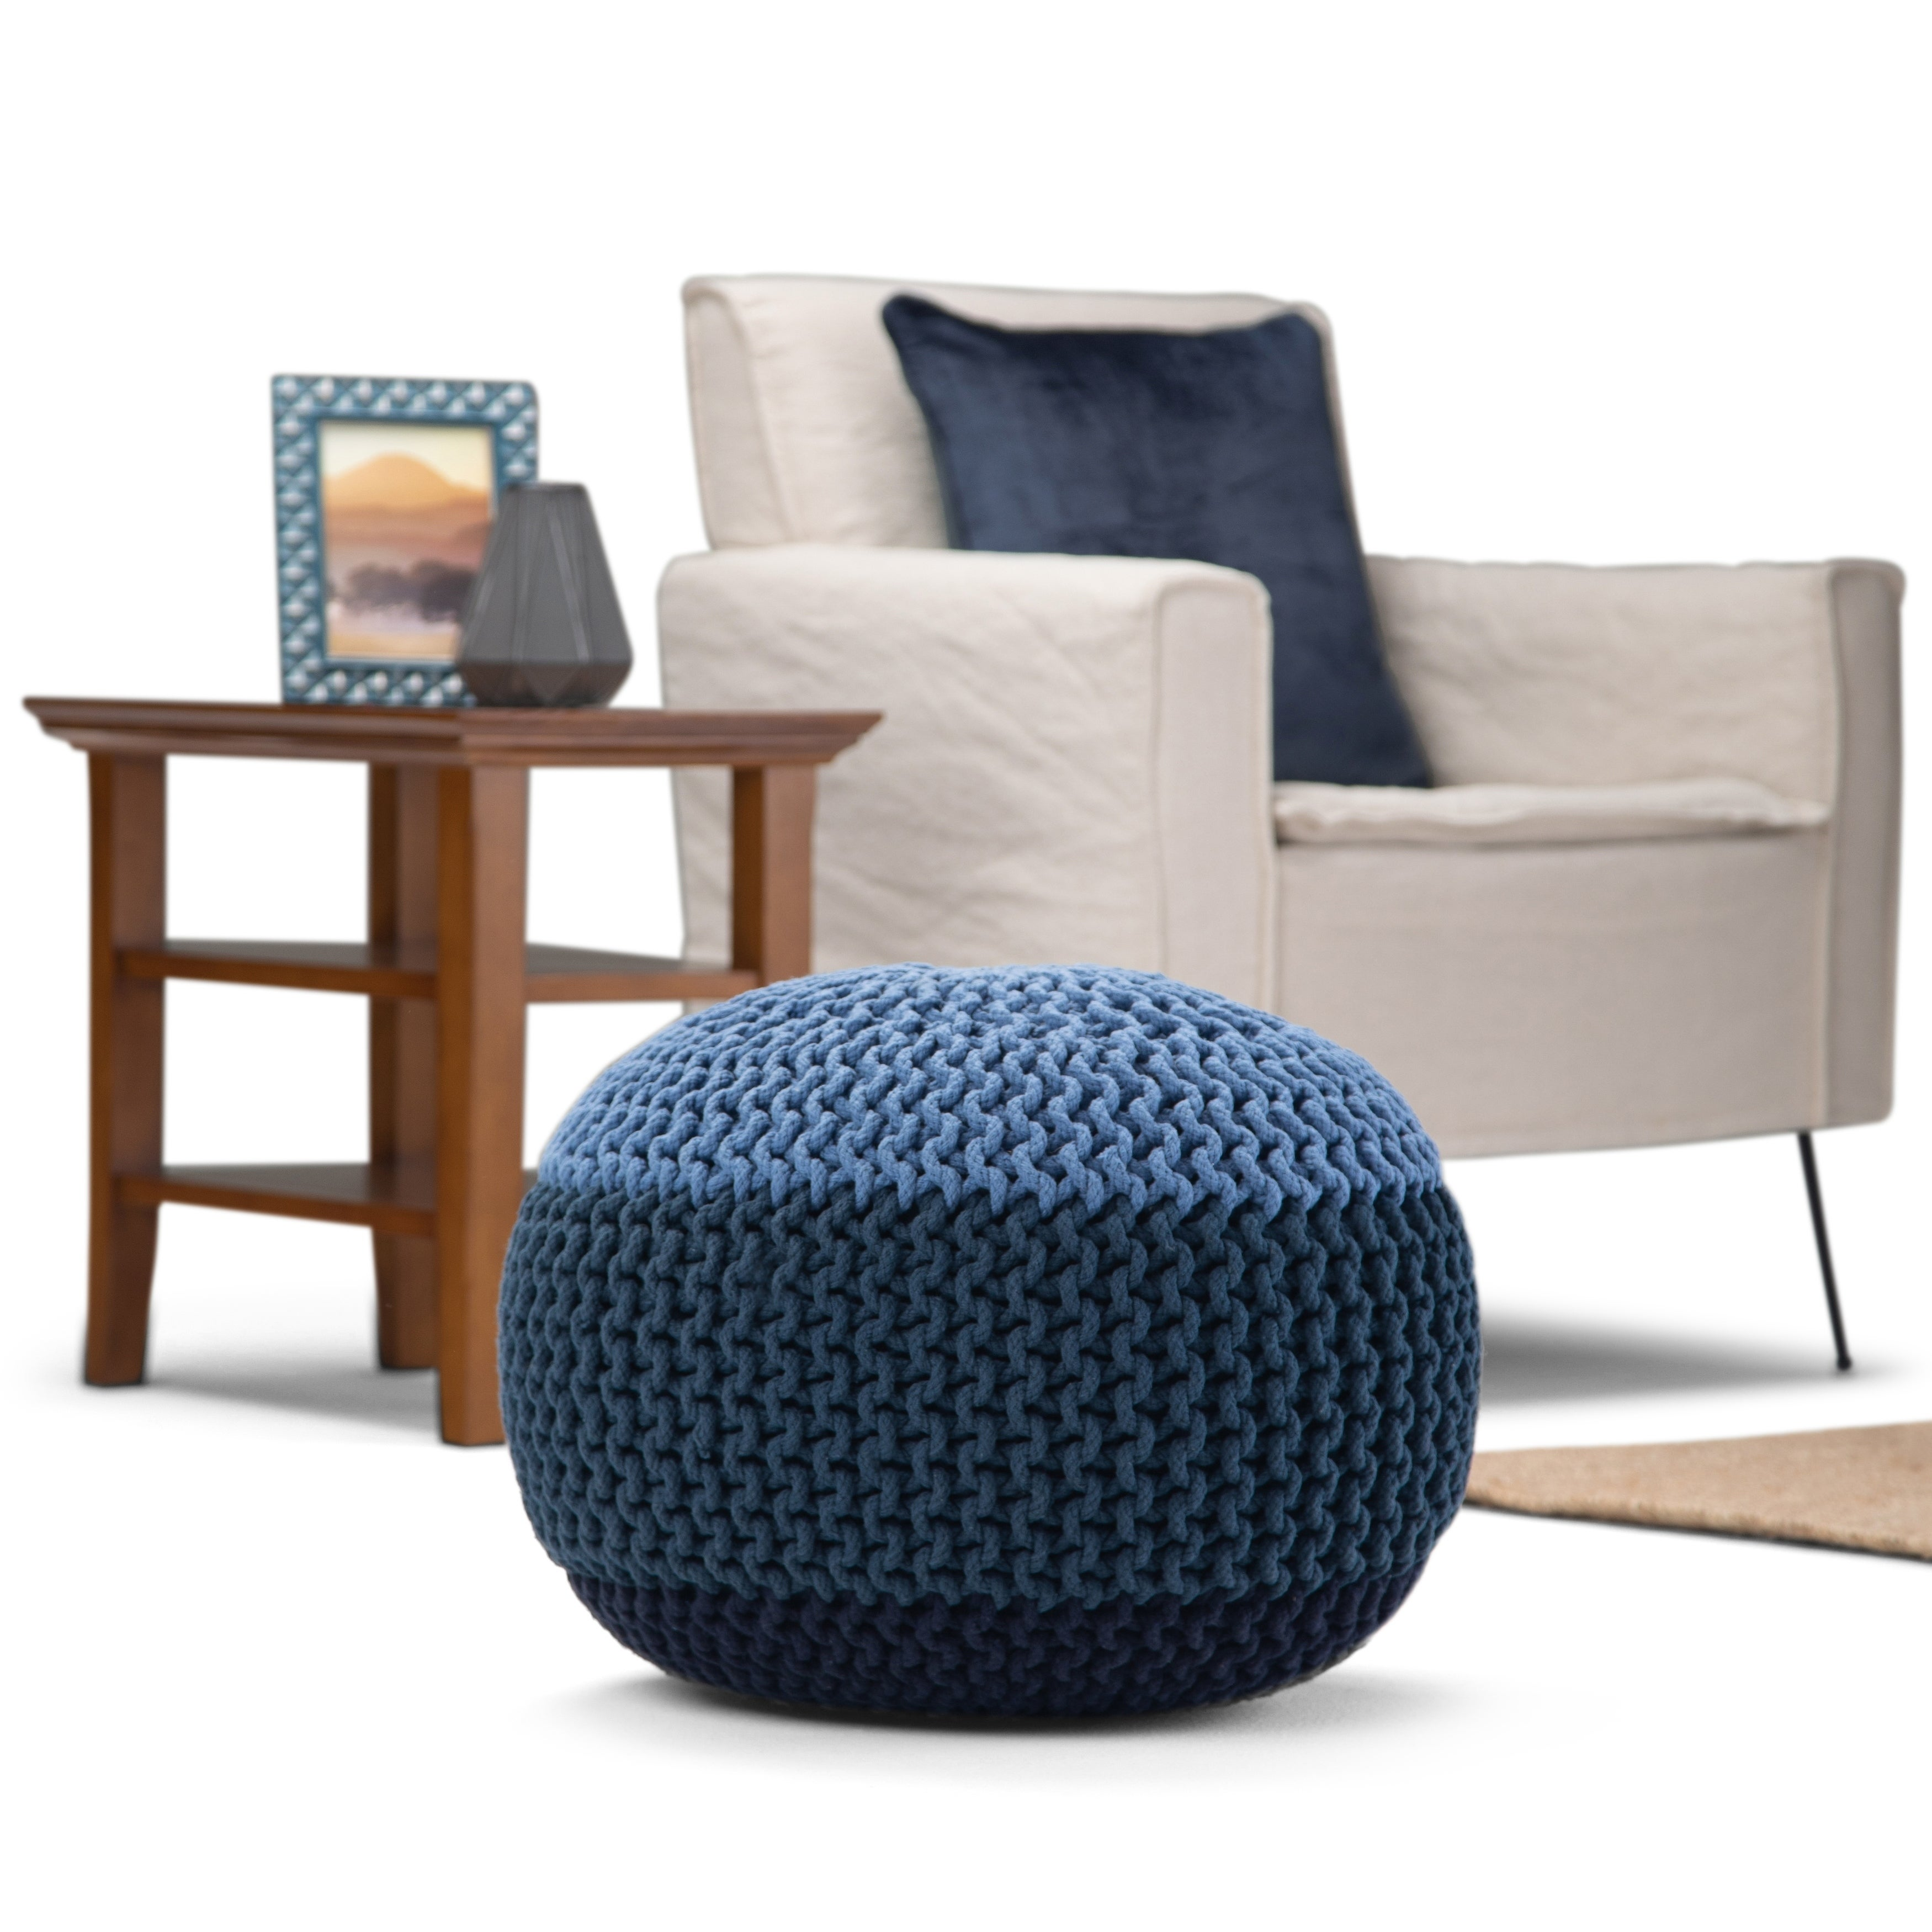 The Curated Nomad Holladay Round Hand Knit Pouf In Blue Navy Cotton Overstock 28233530